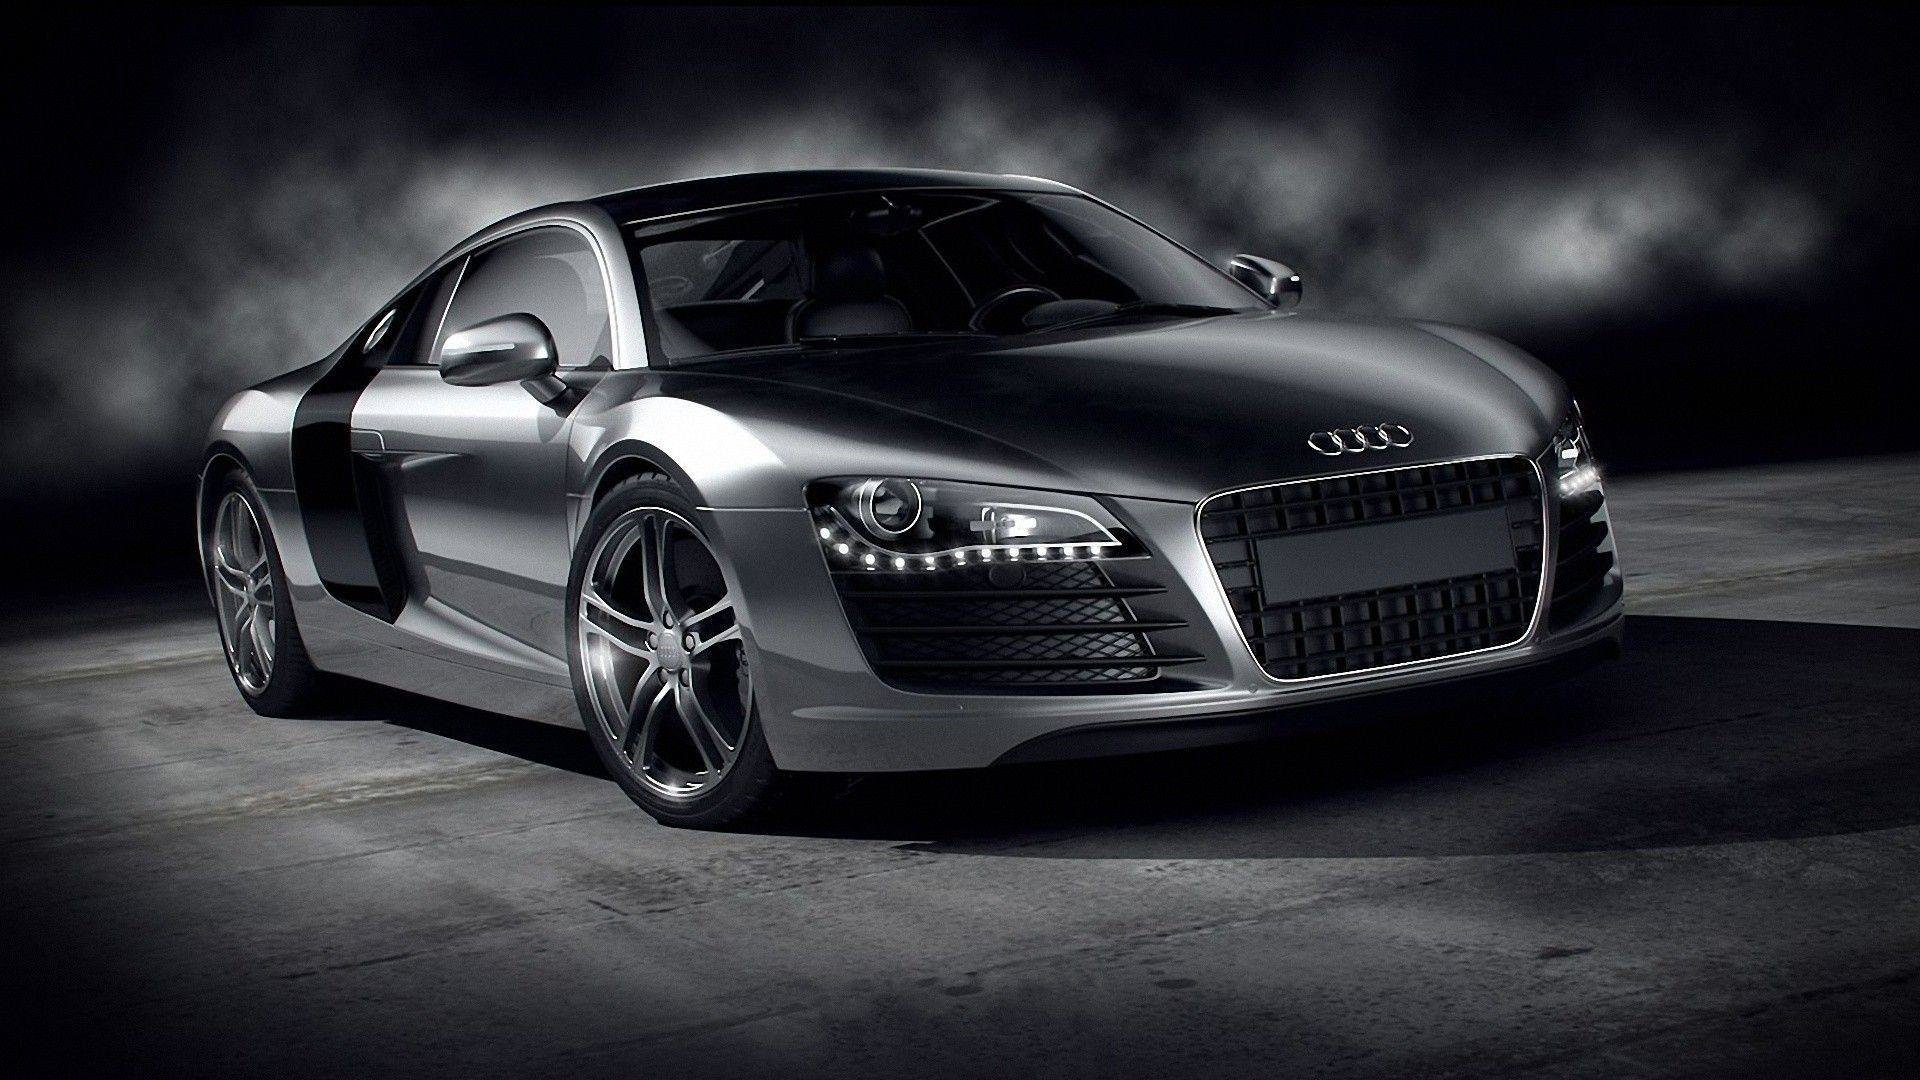 Latest Audi R8 Wallpapers Hd Wallpaper Cave Free Download